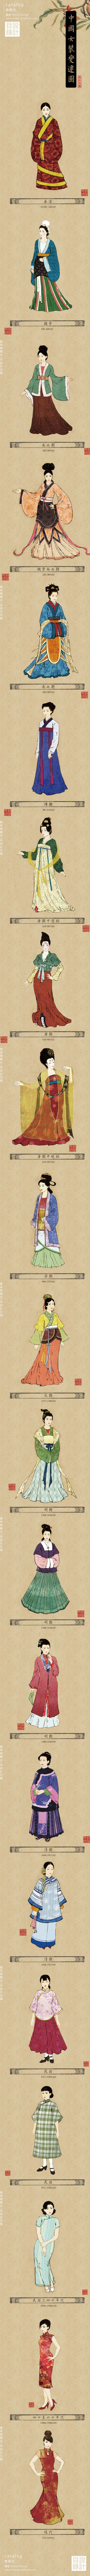 The history of Chinese women clothes http://cn.hujiang.com/new/p452213/